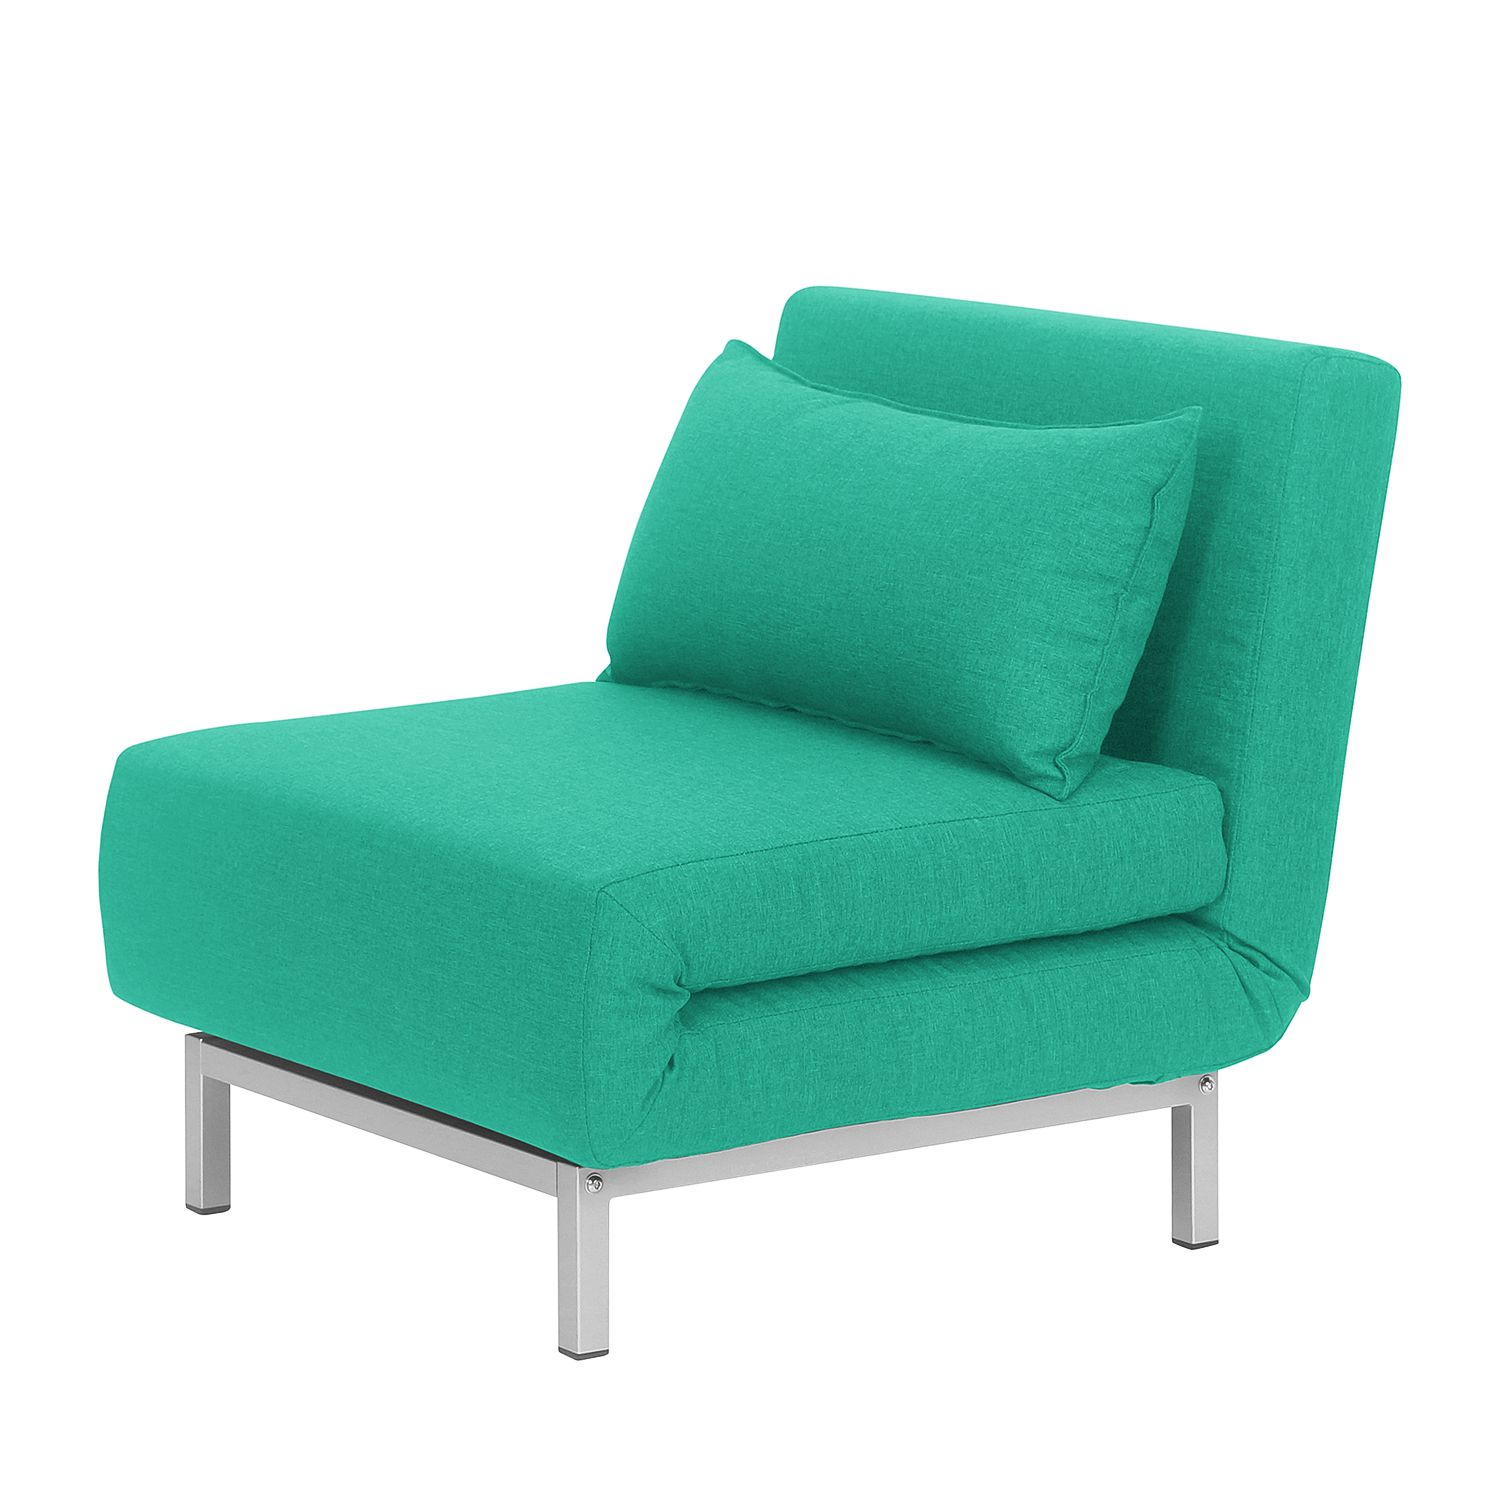 Fauteuil convertible Carmack II Tissu - Turquoise, Fredriks